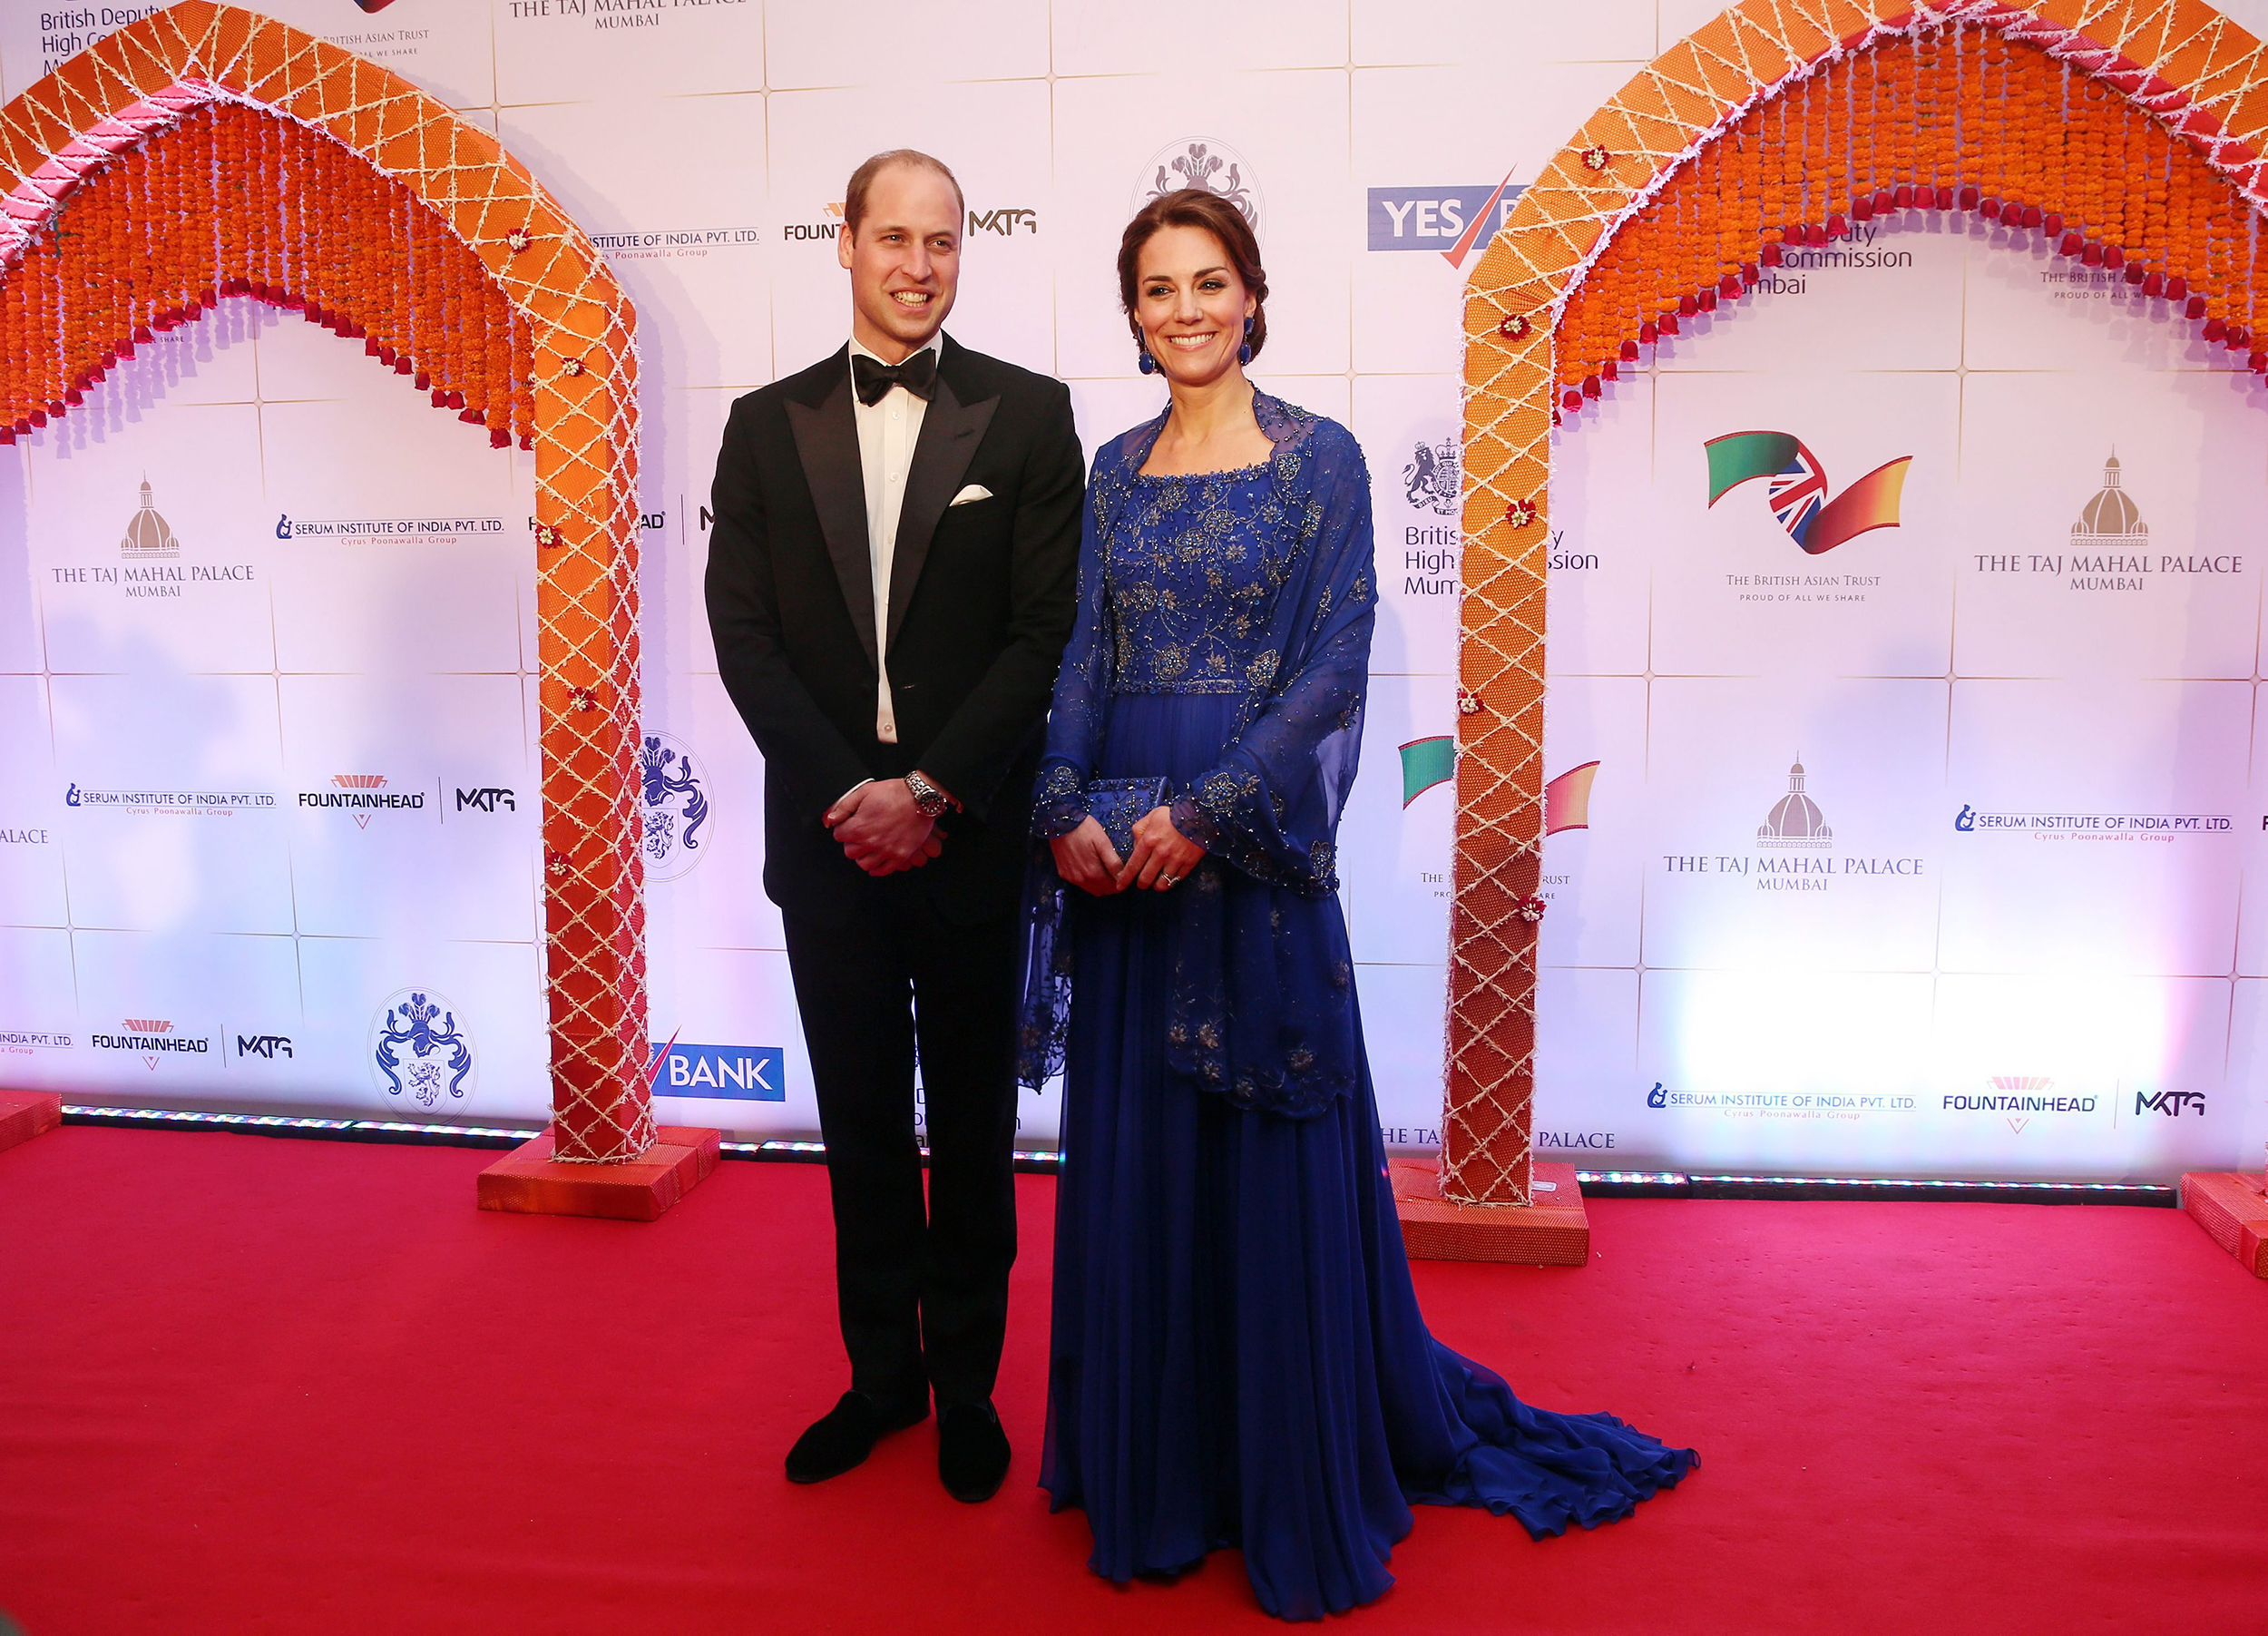 Prince William and Catherine, Duchess of Cambridge at the Charity Gala function at the Taj Mahal Palace hotel in Mumbai, India on April 10, 2016.